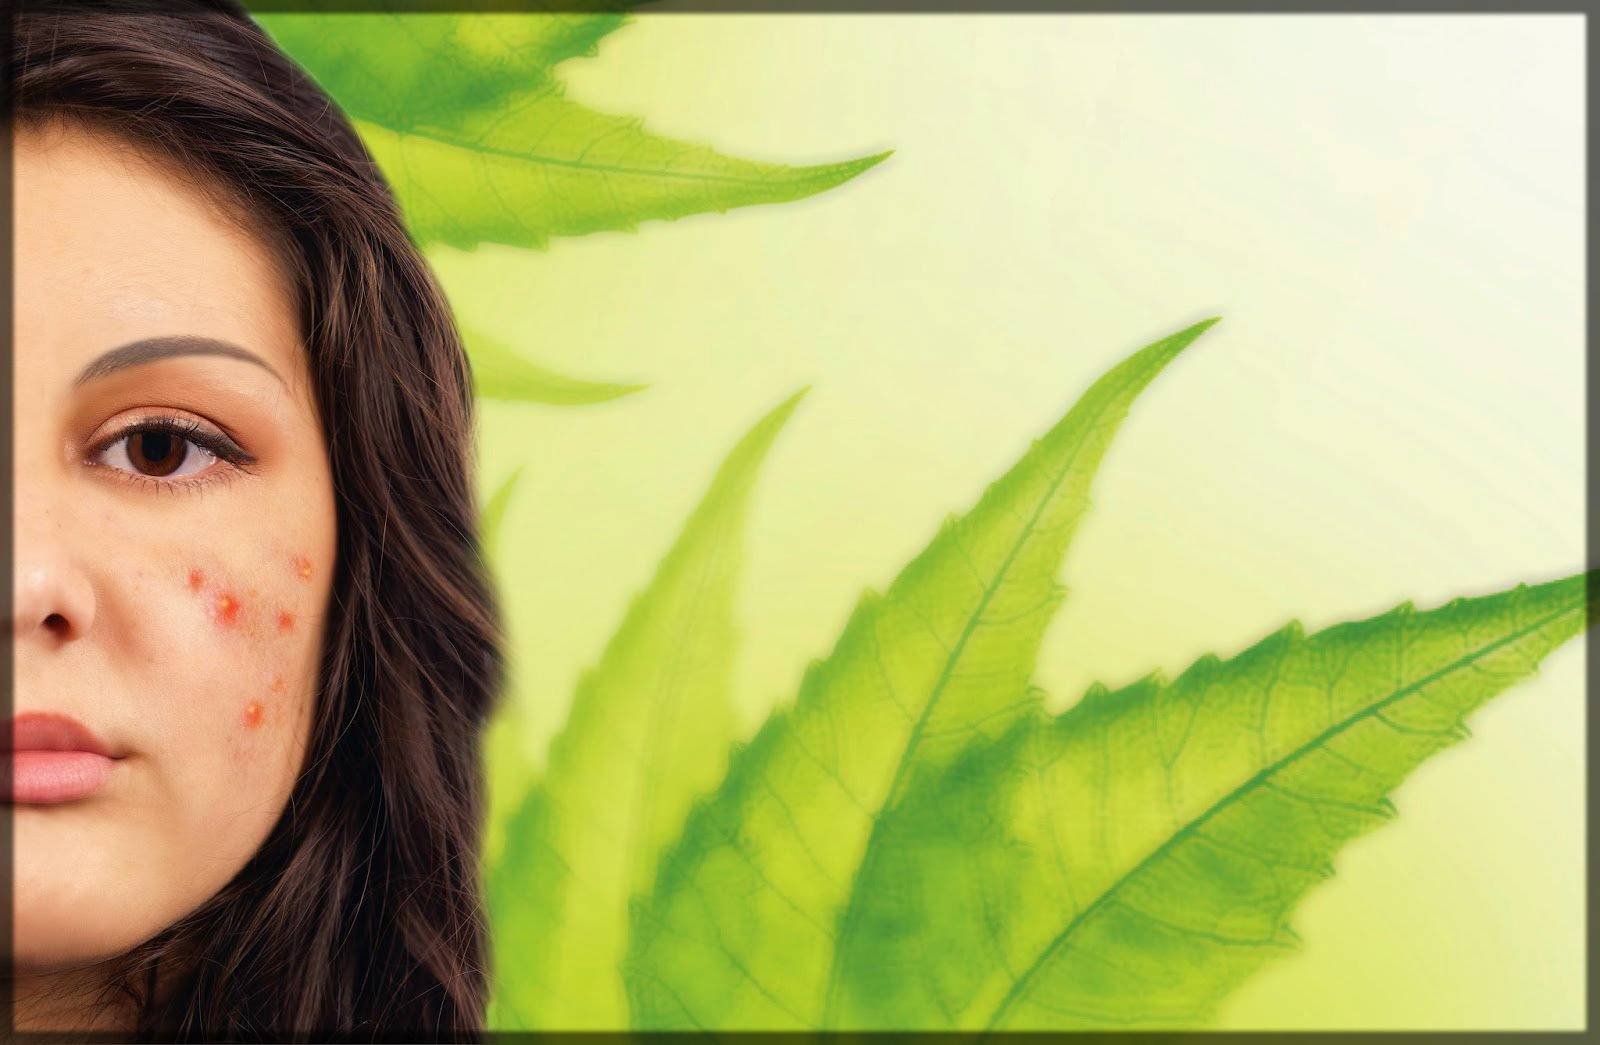 neem leaves for acne and pimples